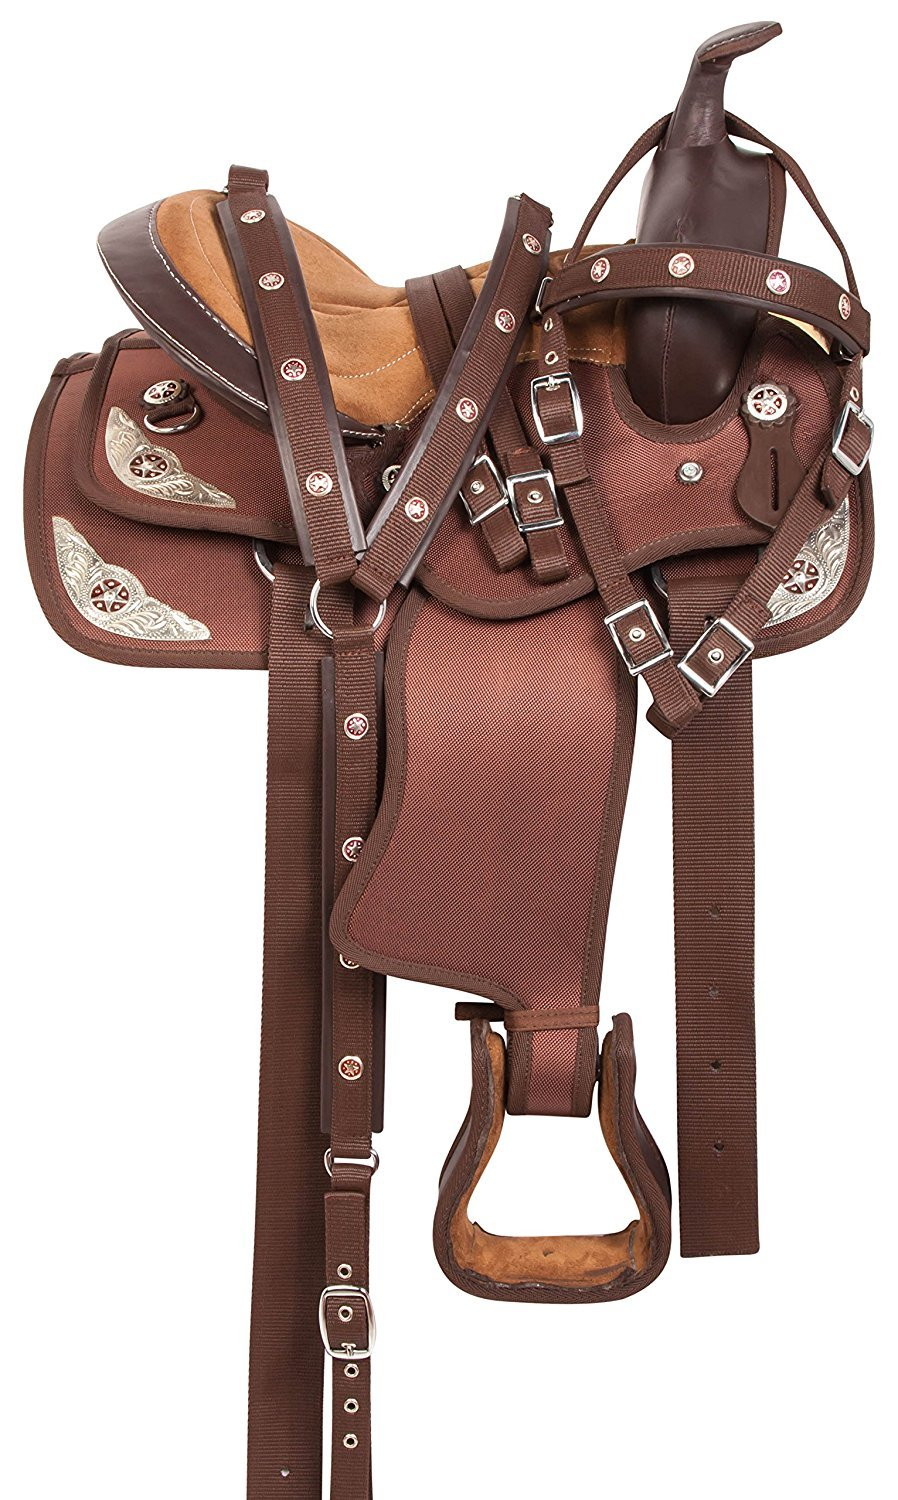 Brown 18 Inch SeatManaal Enterprises Synthetic Western Horse Saddle Barrel Racing Tack + Headstall, Breast Collar Size 15  to 18  Inch Seat Available